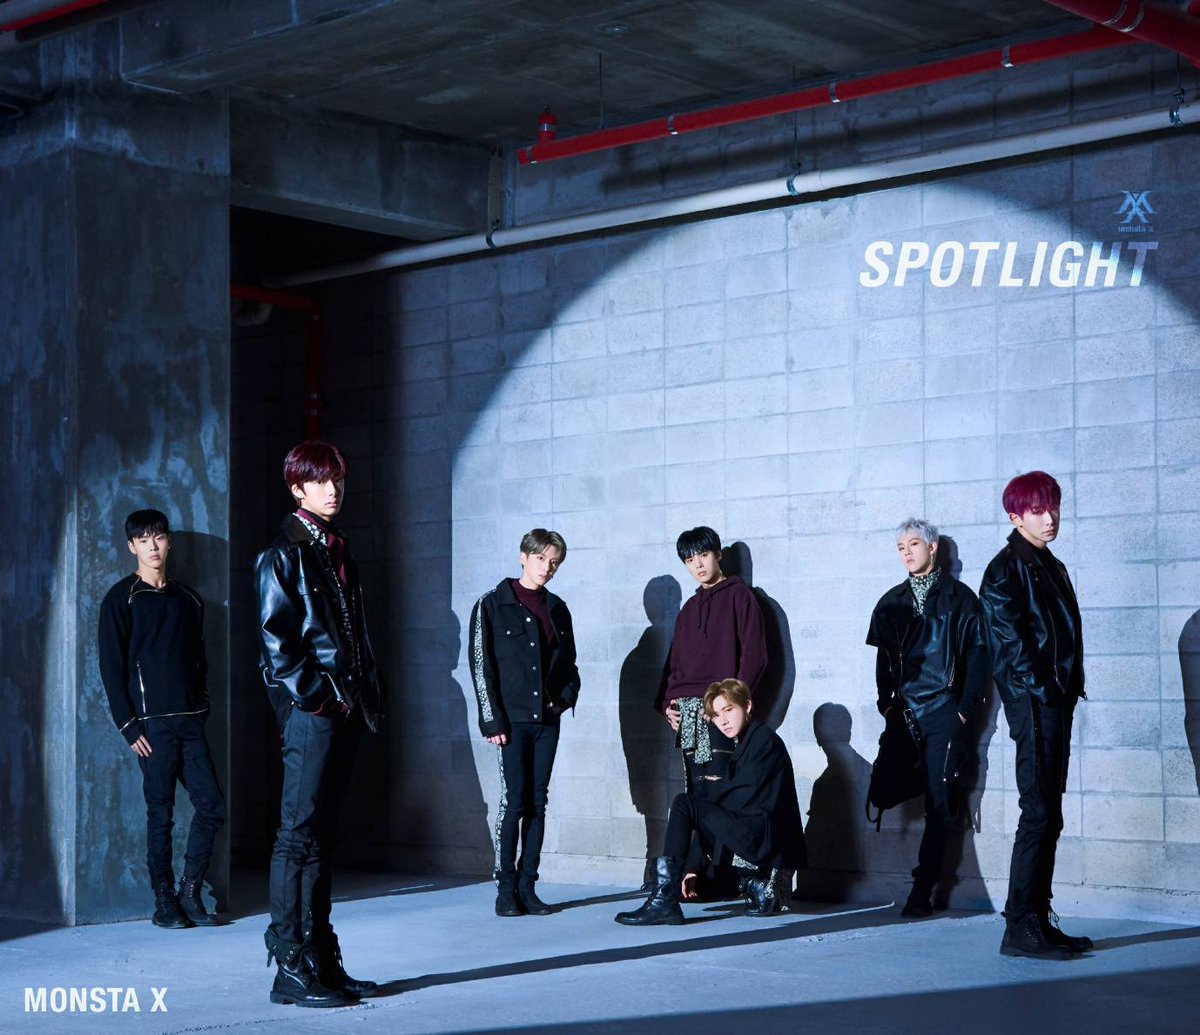 Spotlight (MONSTA X)